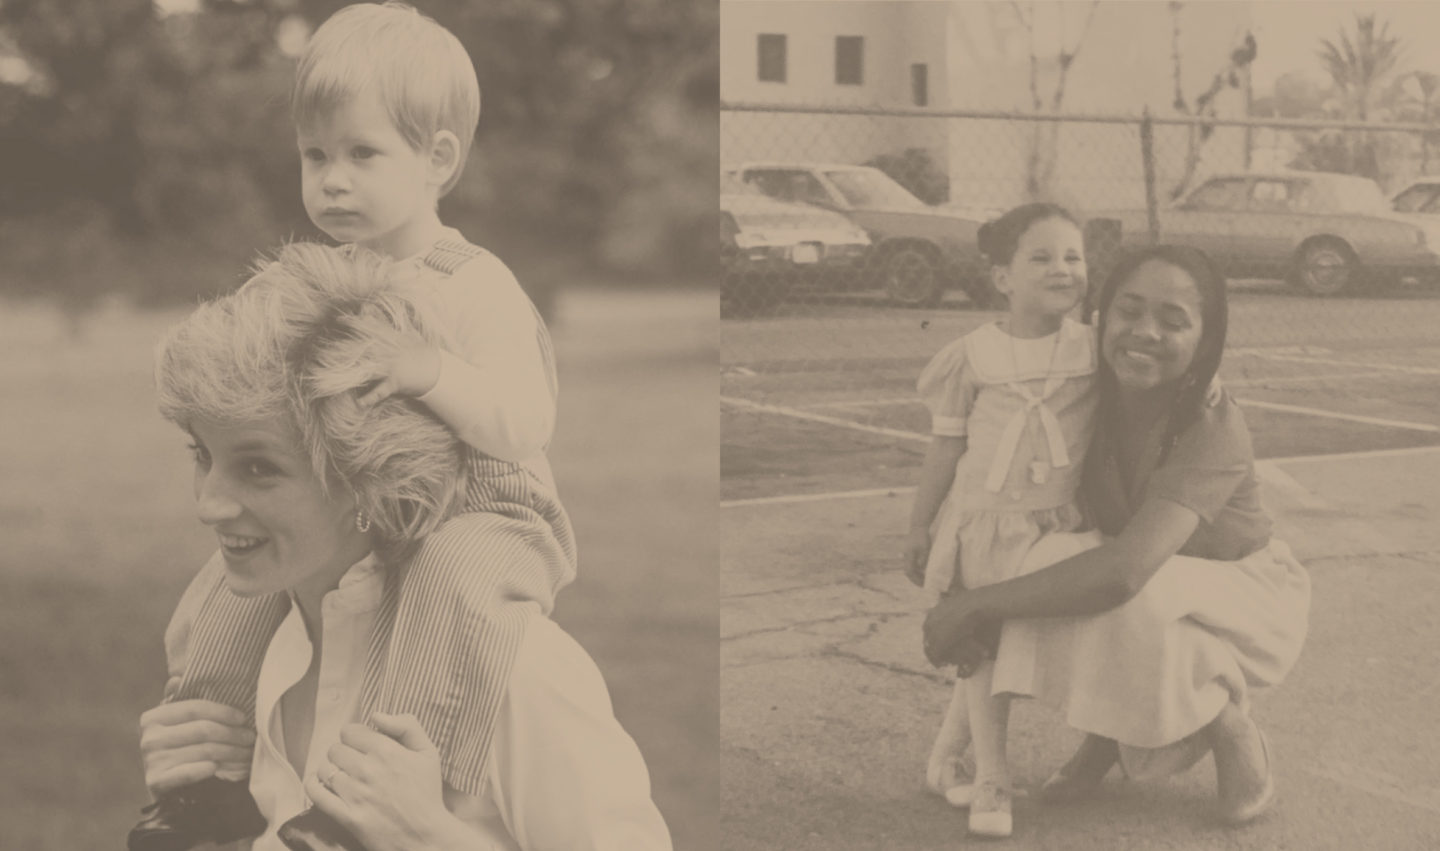 Two images: Left is Princess Diana with young Prince Harry on her shoulders. Right is a photo of young Meghan and her mother, Doria.